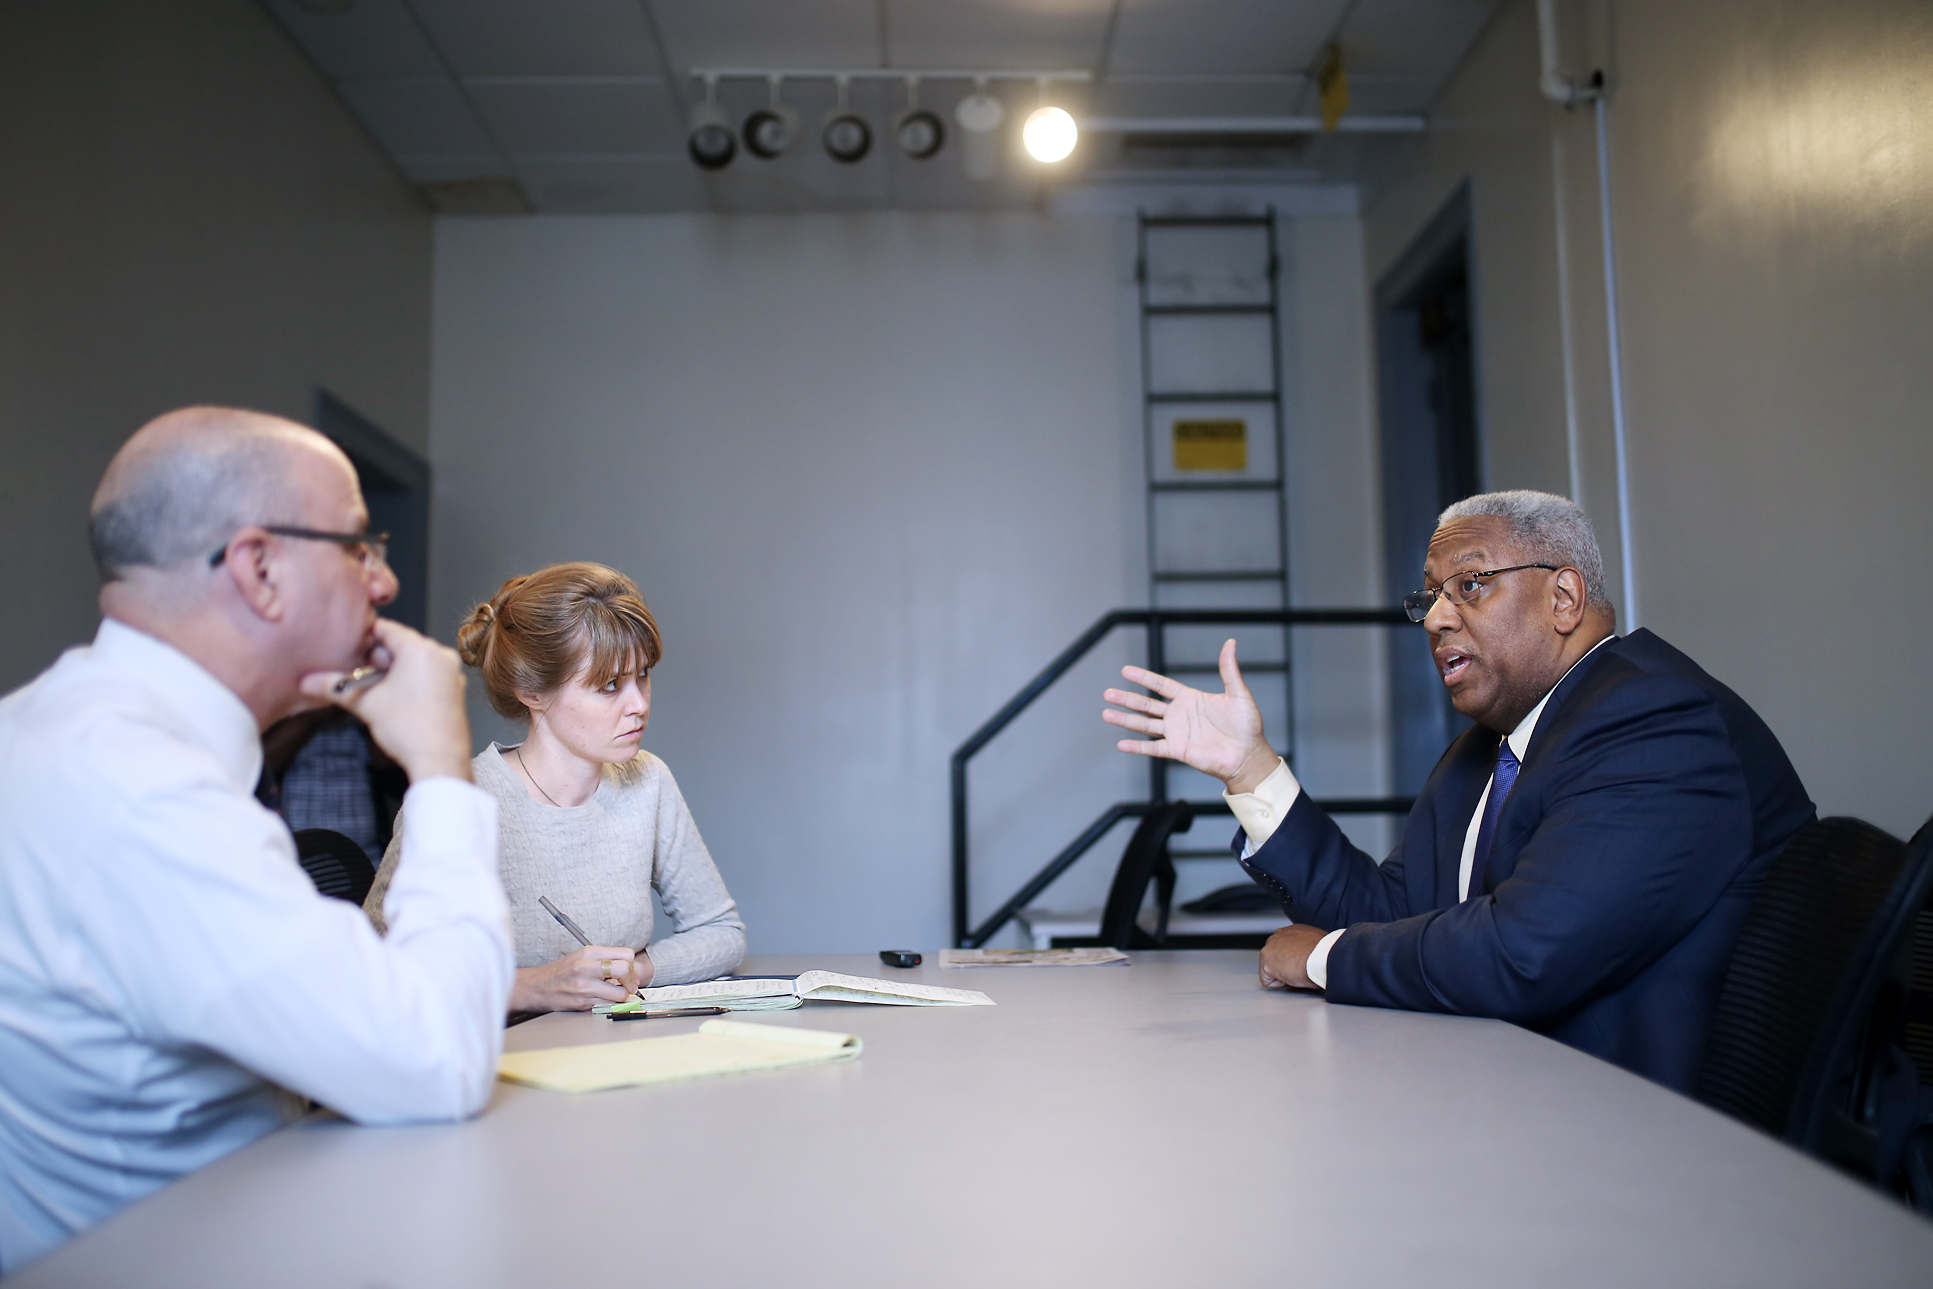 Life is complex. For me, it's important to dig behind the soundbites into the big issues (as in this one on congressional priorities with @RepMcEachin for @ProgressIndex; full story at  http://bit.ly/2B9l1DY ) [ photo by Scott Yates ] ...